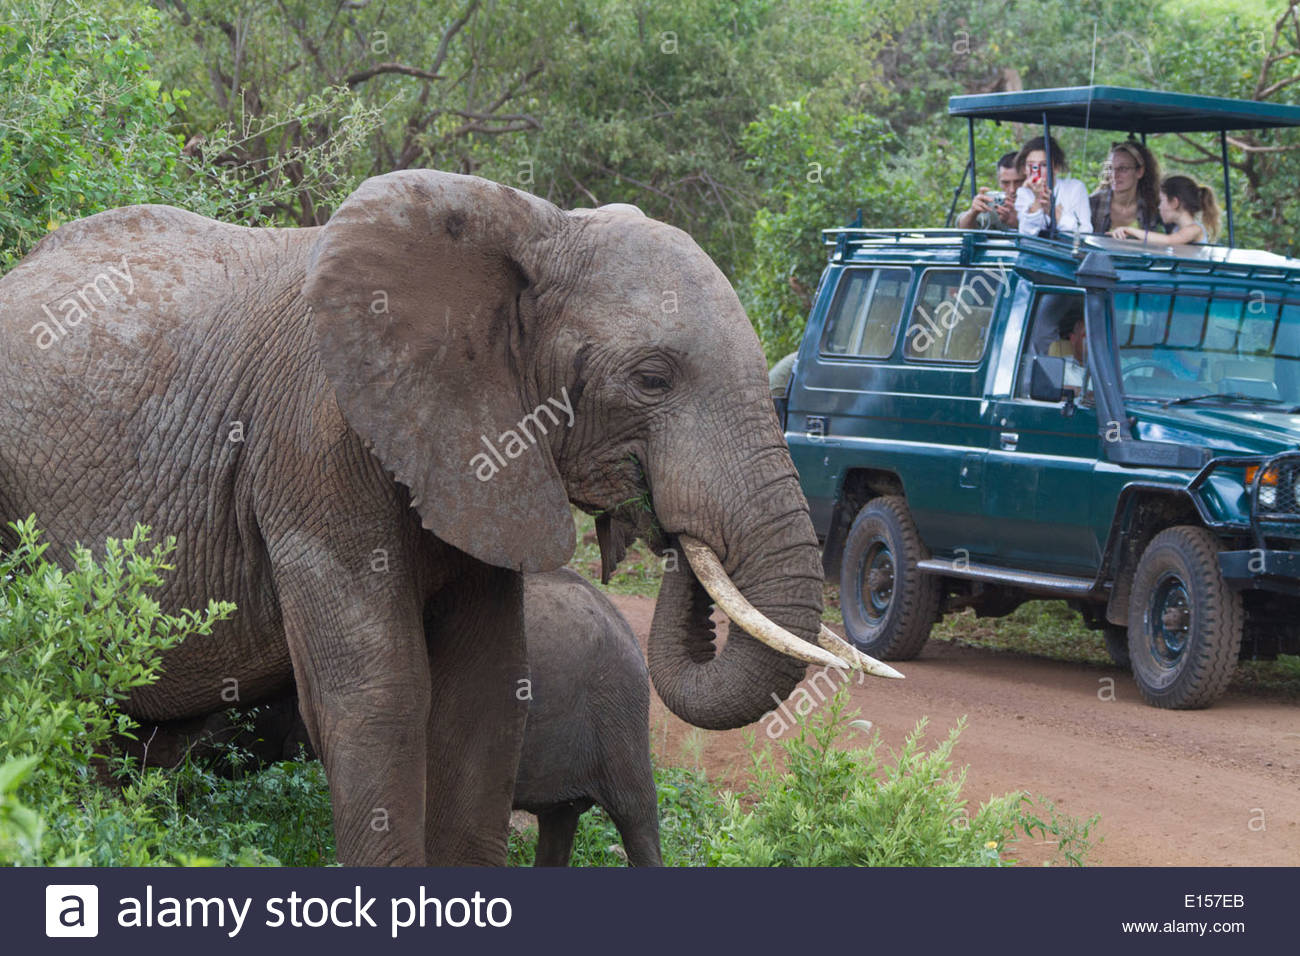 A group of safari tourists looks on and takes photos of a mother African Bush Elephant and her baby in Tanzania. - Stock Image